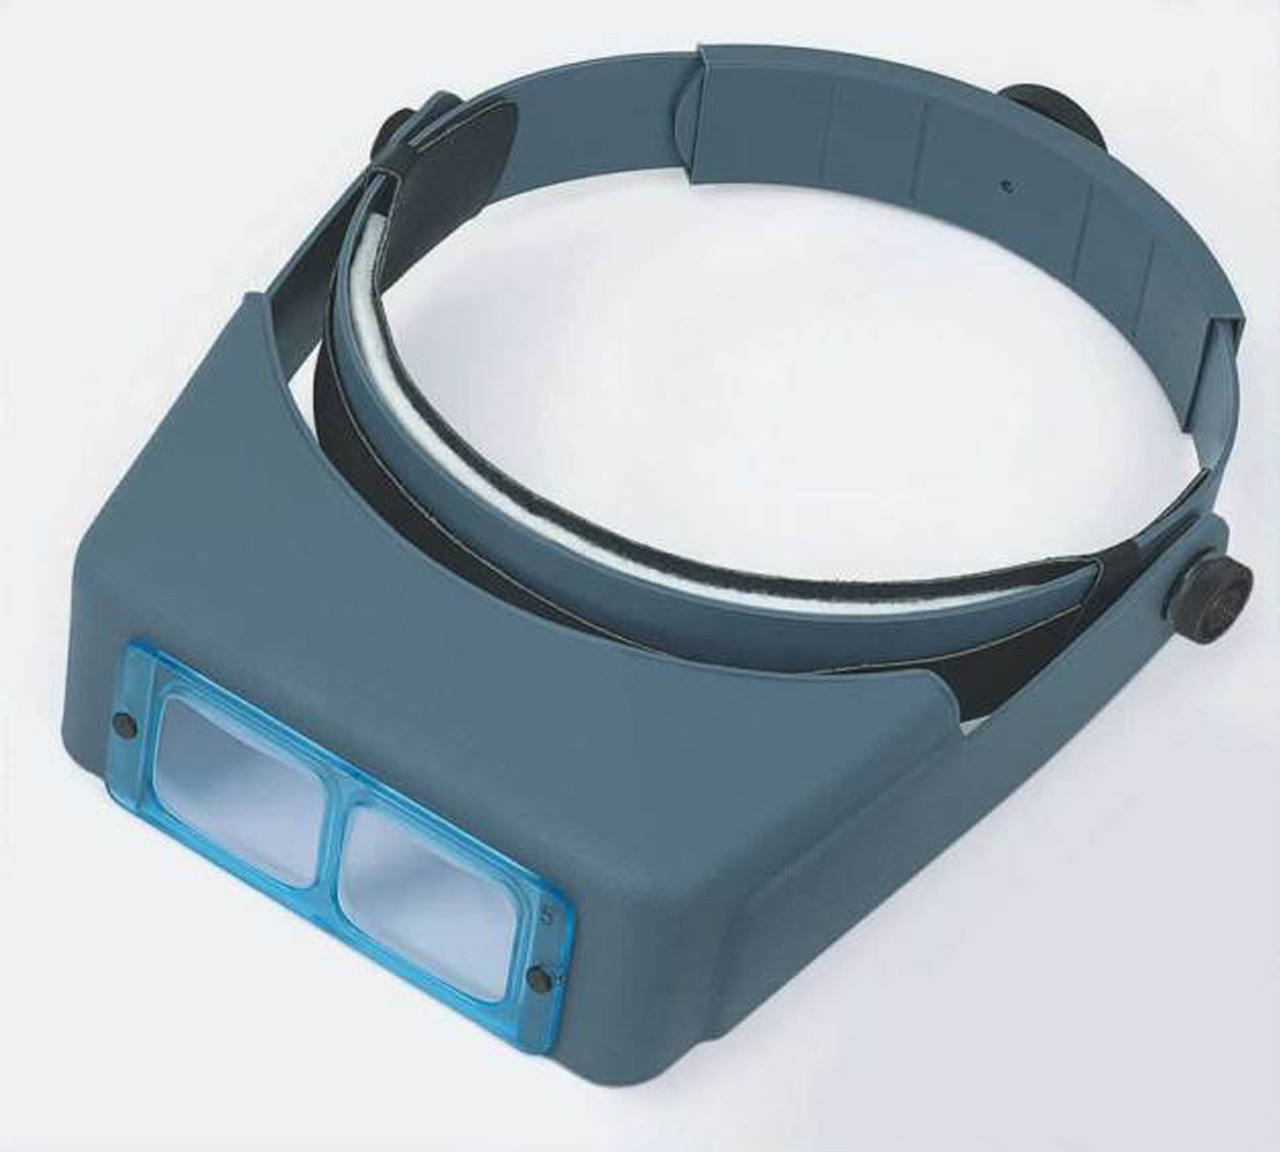 2.75x OptiVISOR Headset Magnifier